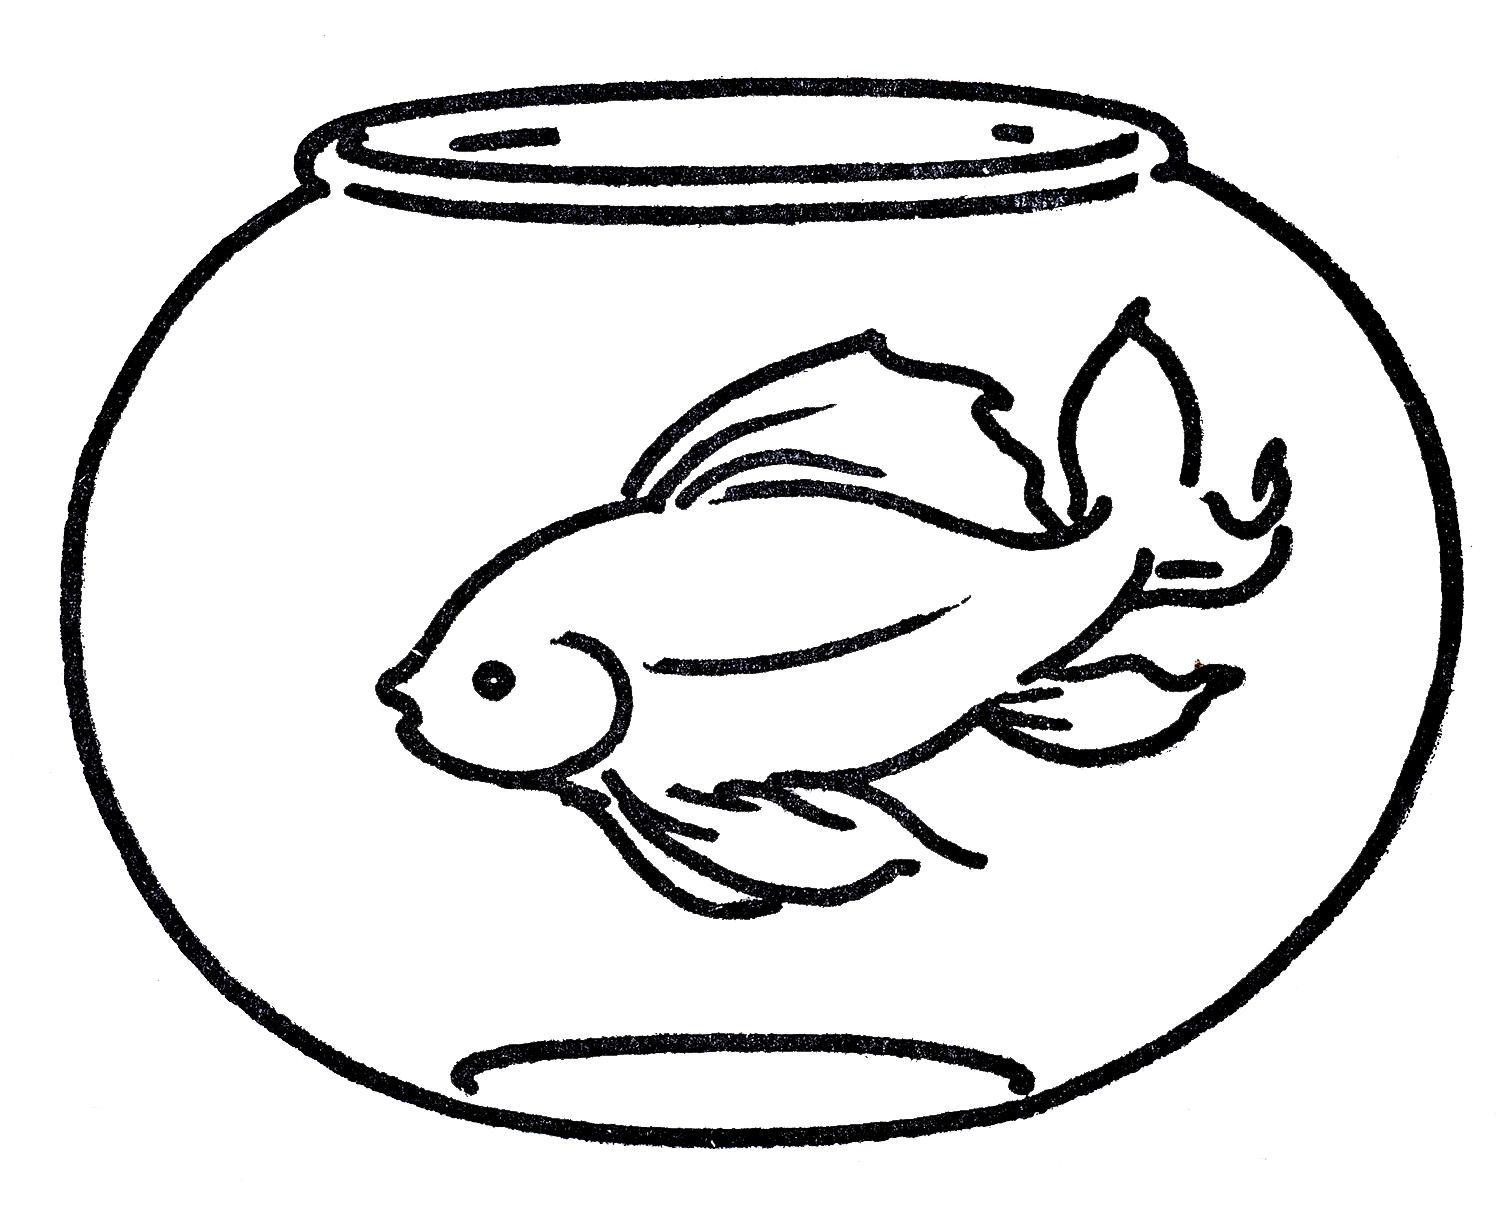 Fish bowl with fish black and white clipart.